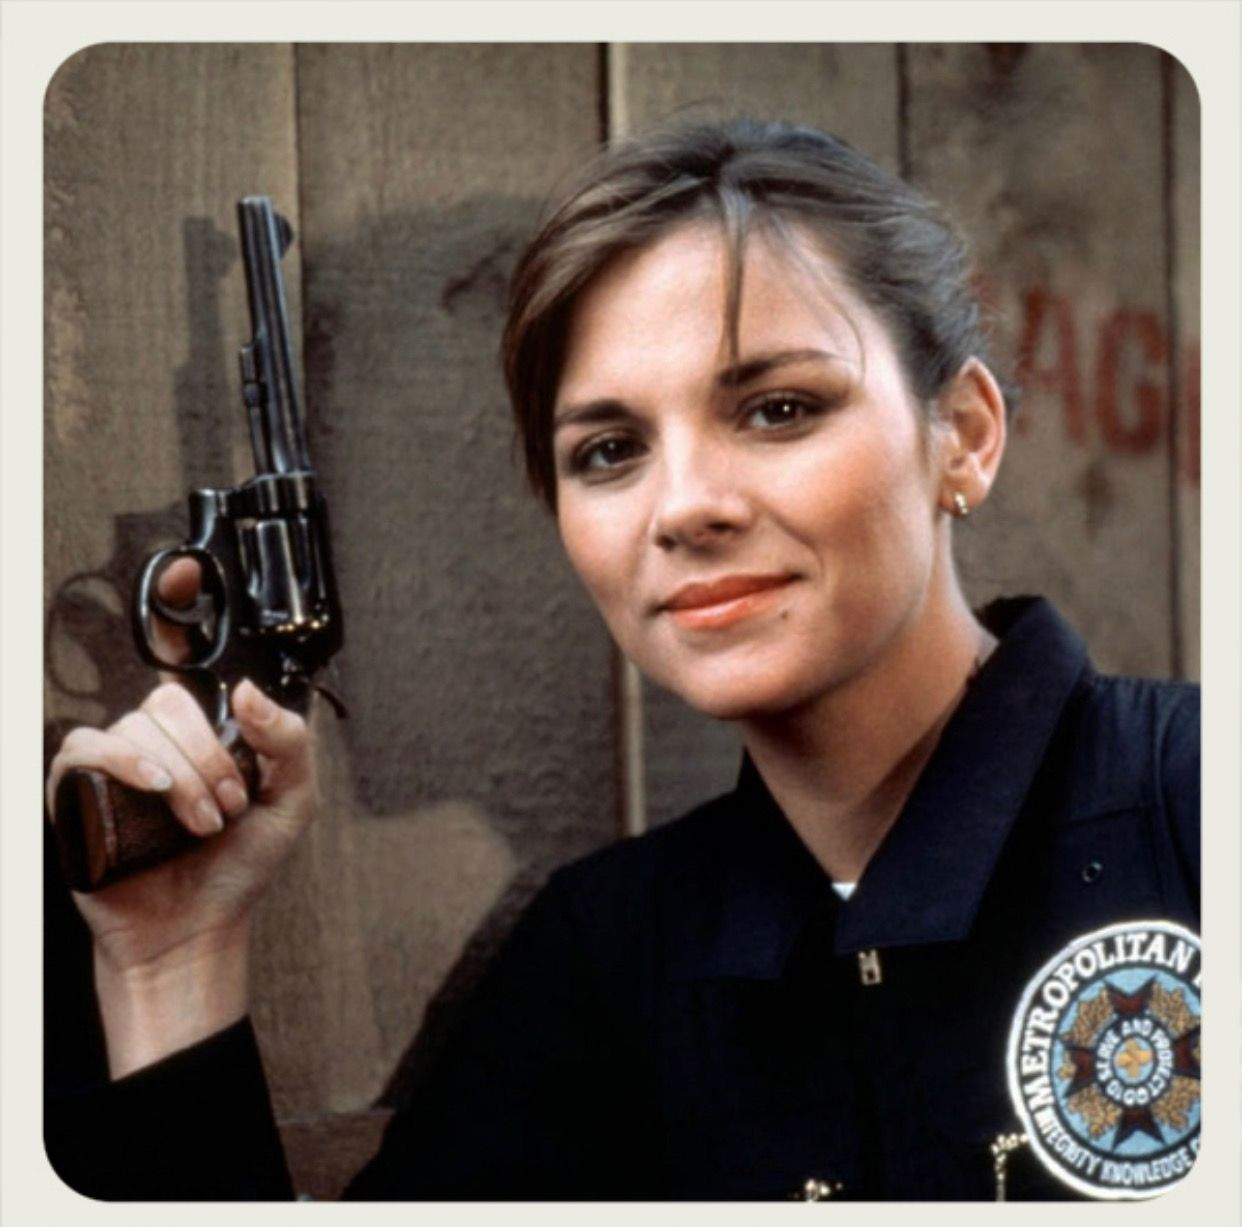 Pin By Richmondes On Police Academy Kim Cattrall Police Academy Young Kim